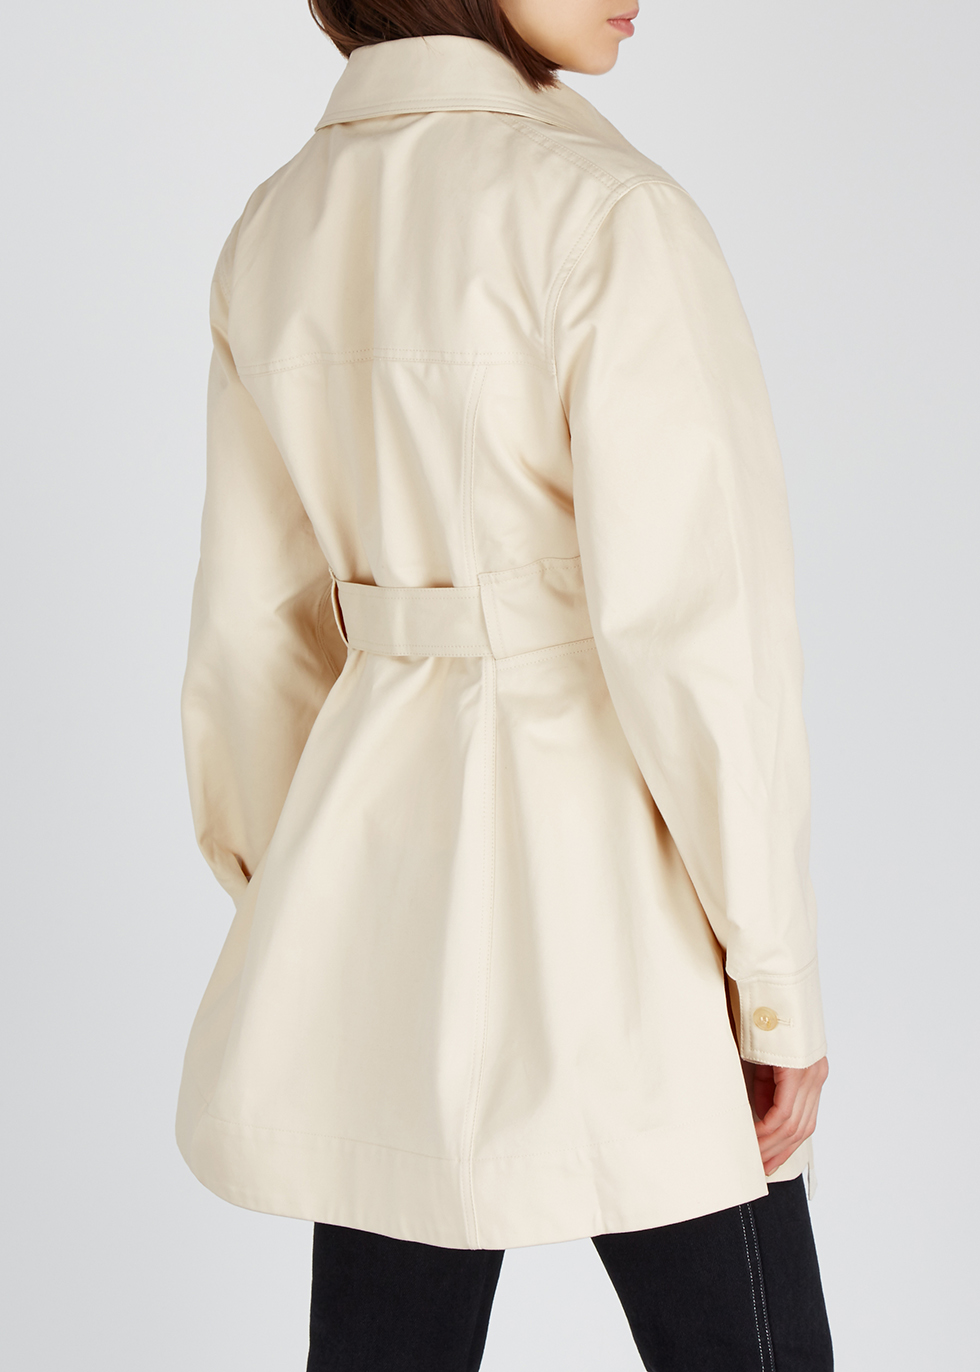 Ivory belted cotton-twill jacket - Acne Studios